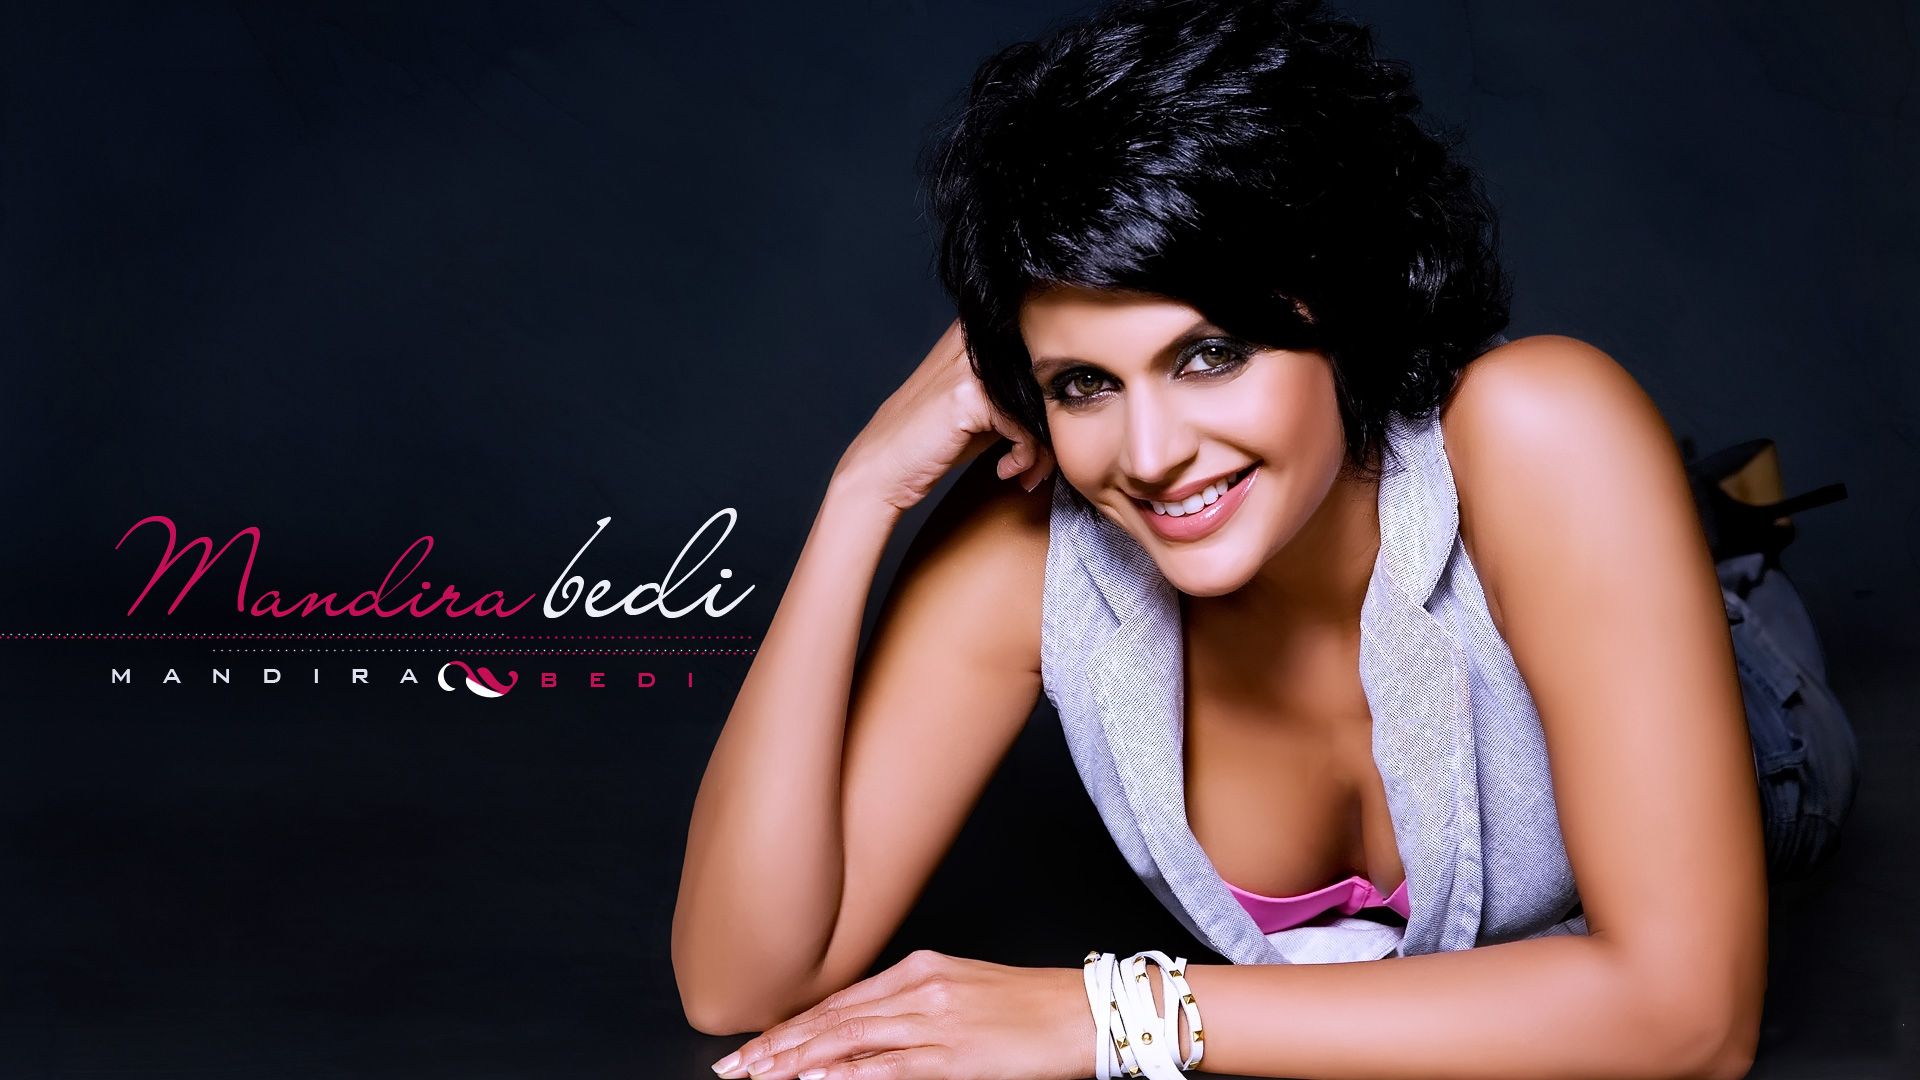 Rajput Wallpaper Hd Download Mandira Bedi Hd Wallpapers Popopics Com